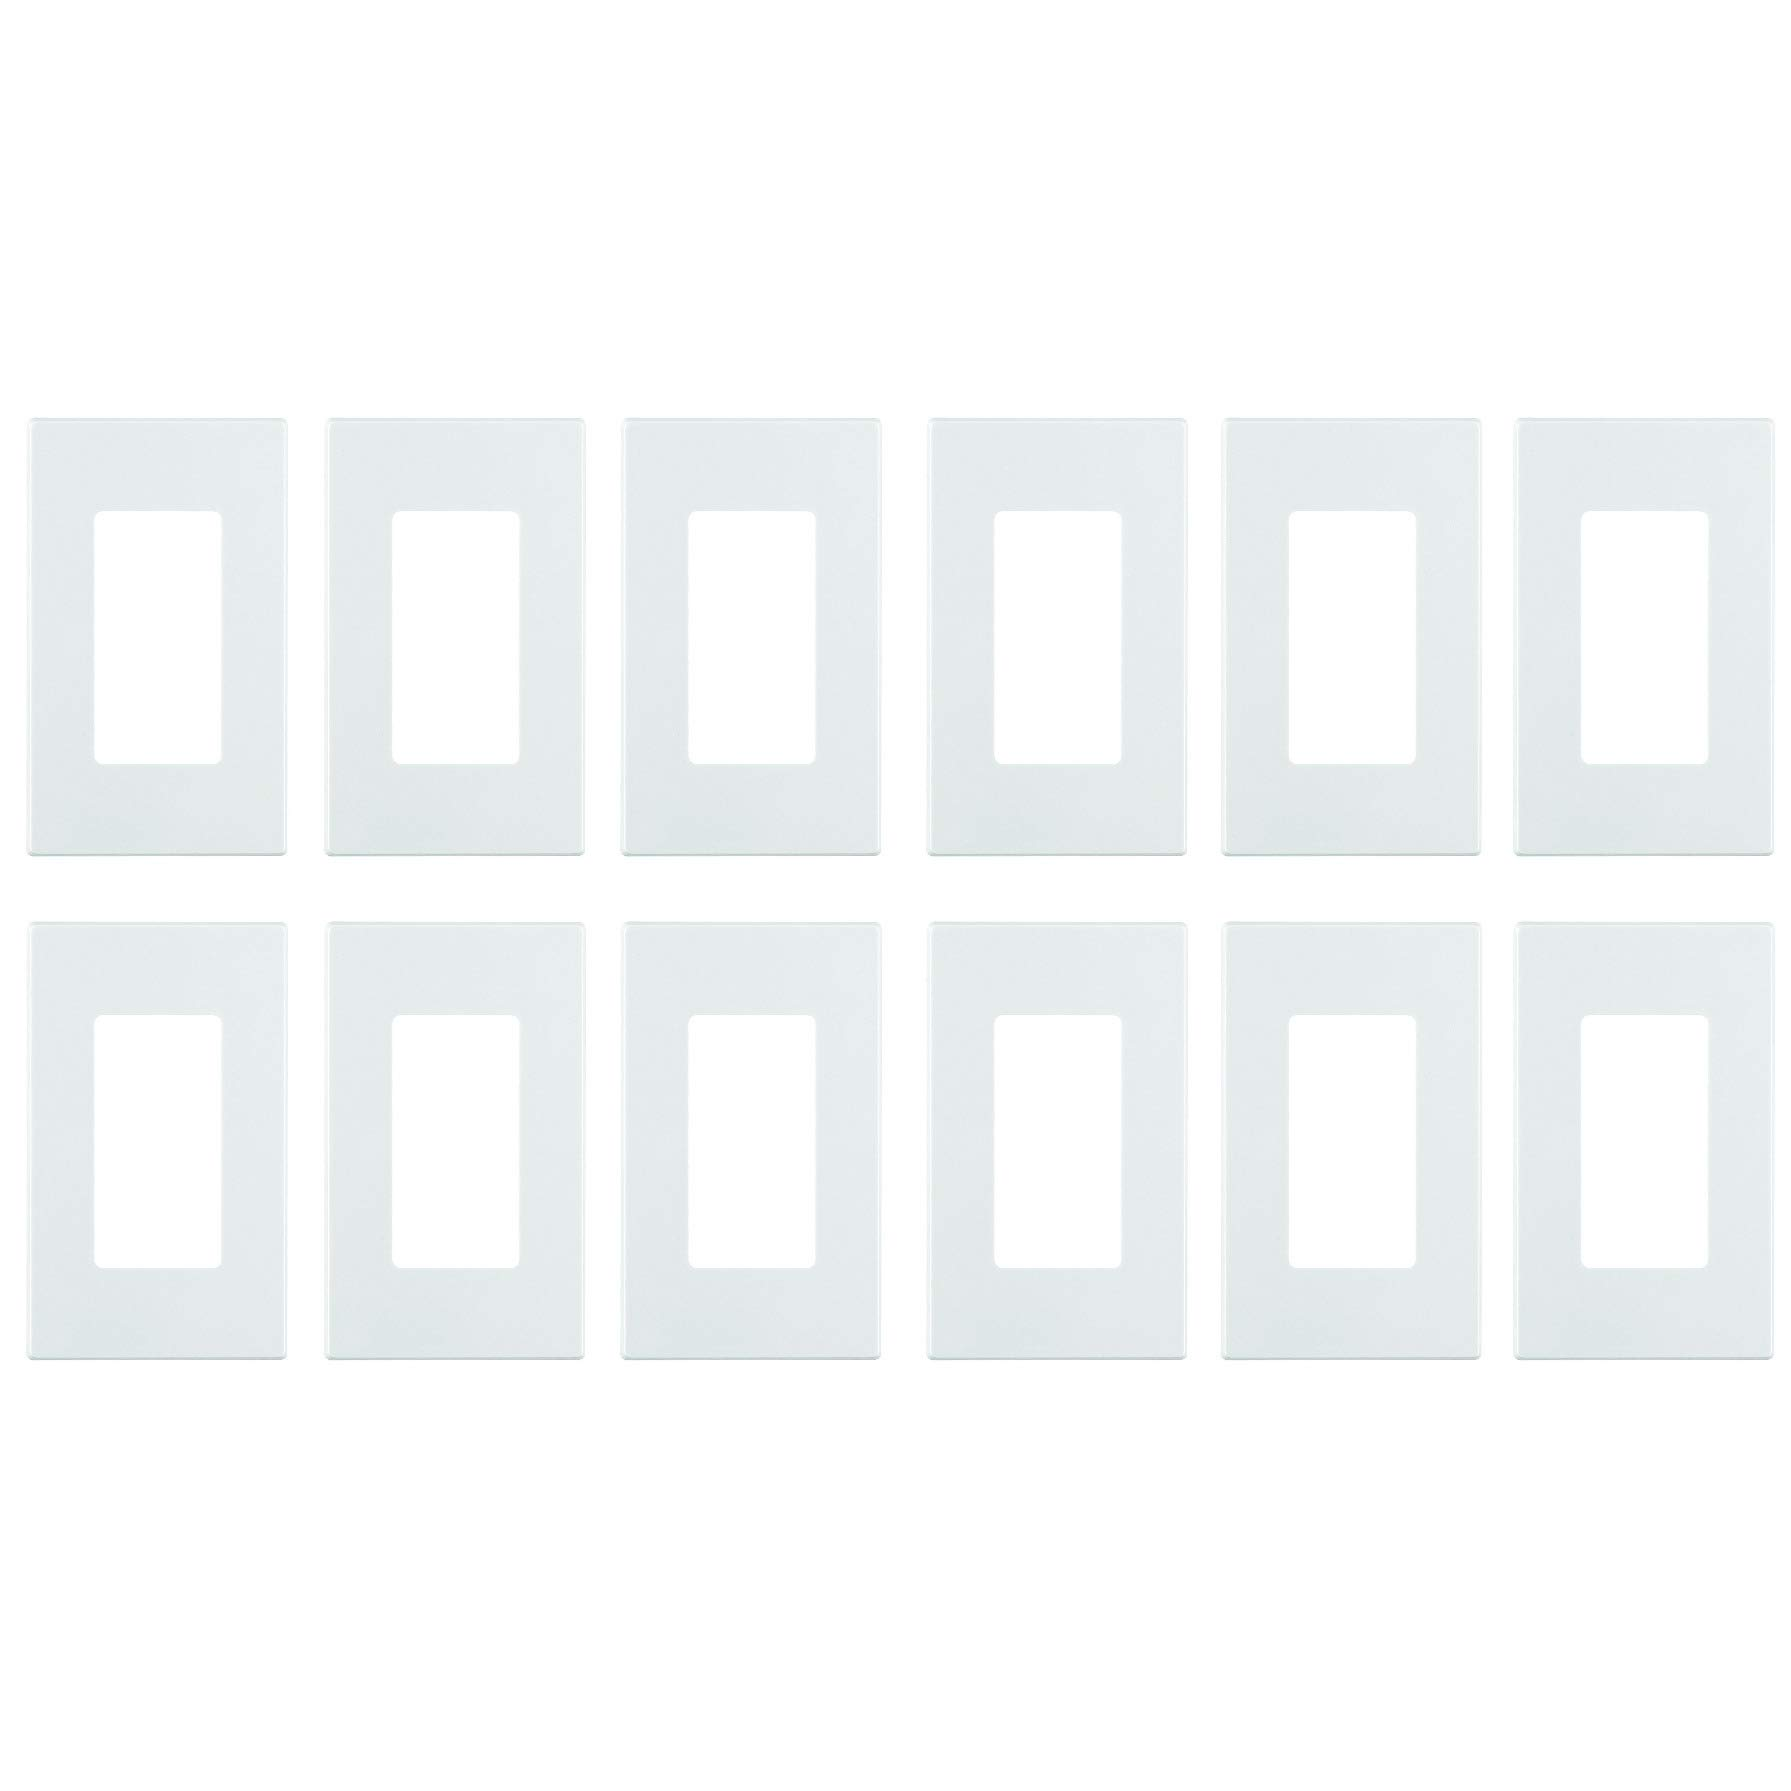 Leviton 80301-SW 100 Pack 1-Gang Decora Plus Wallplate Screwless Snap-On Mount, White